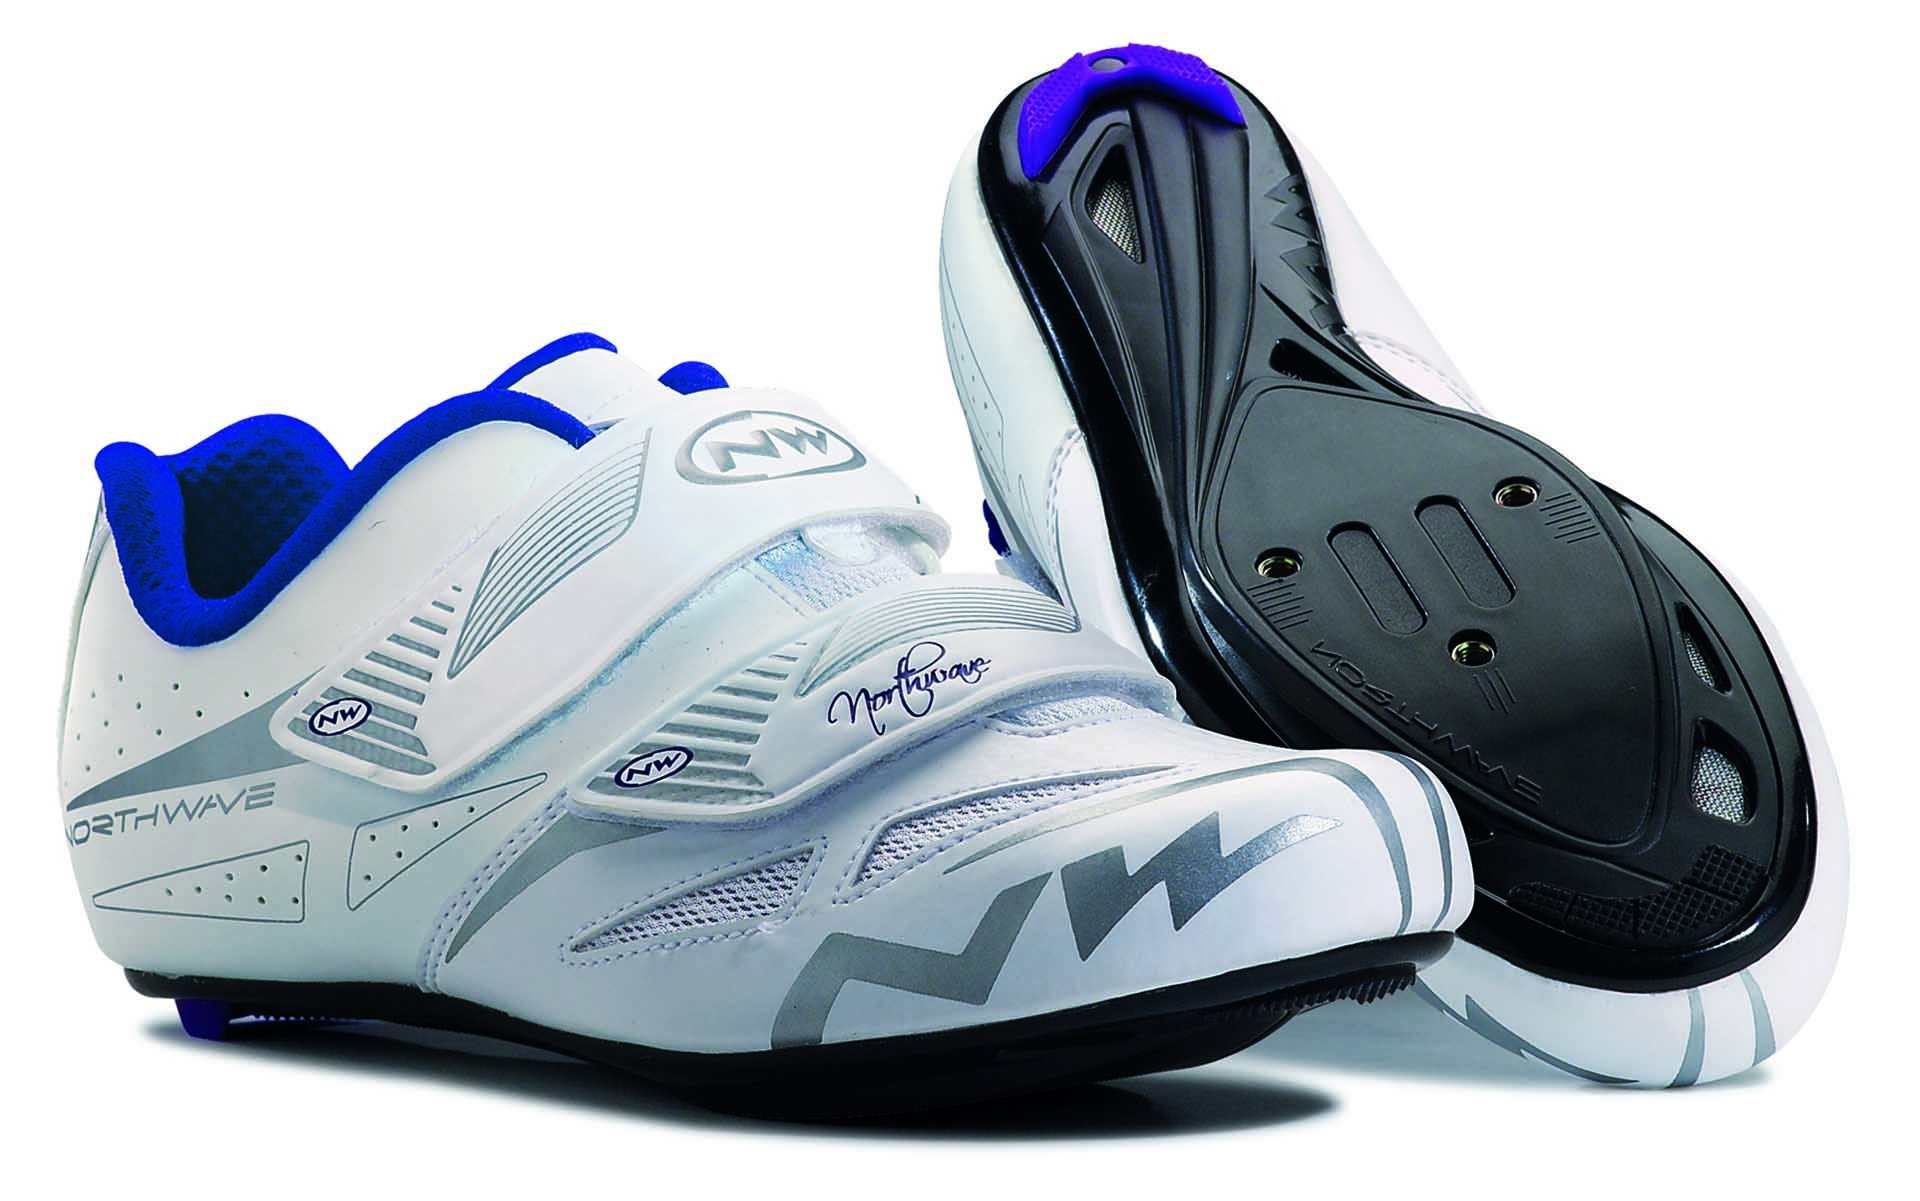 NORTHWAVE Woman road cycling shoes ECLIPSE EVO white/grey (39)